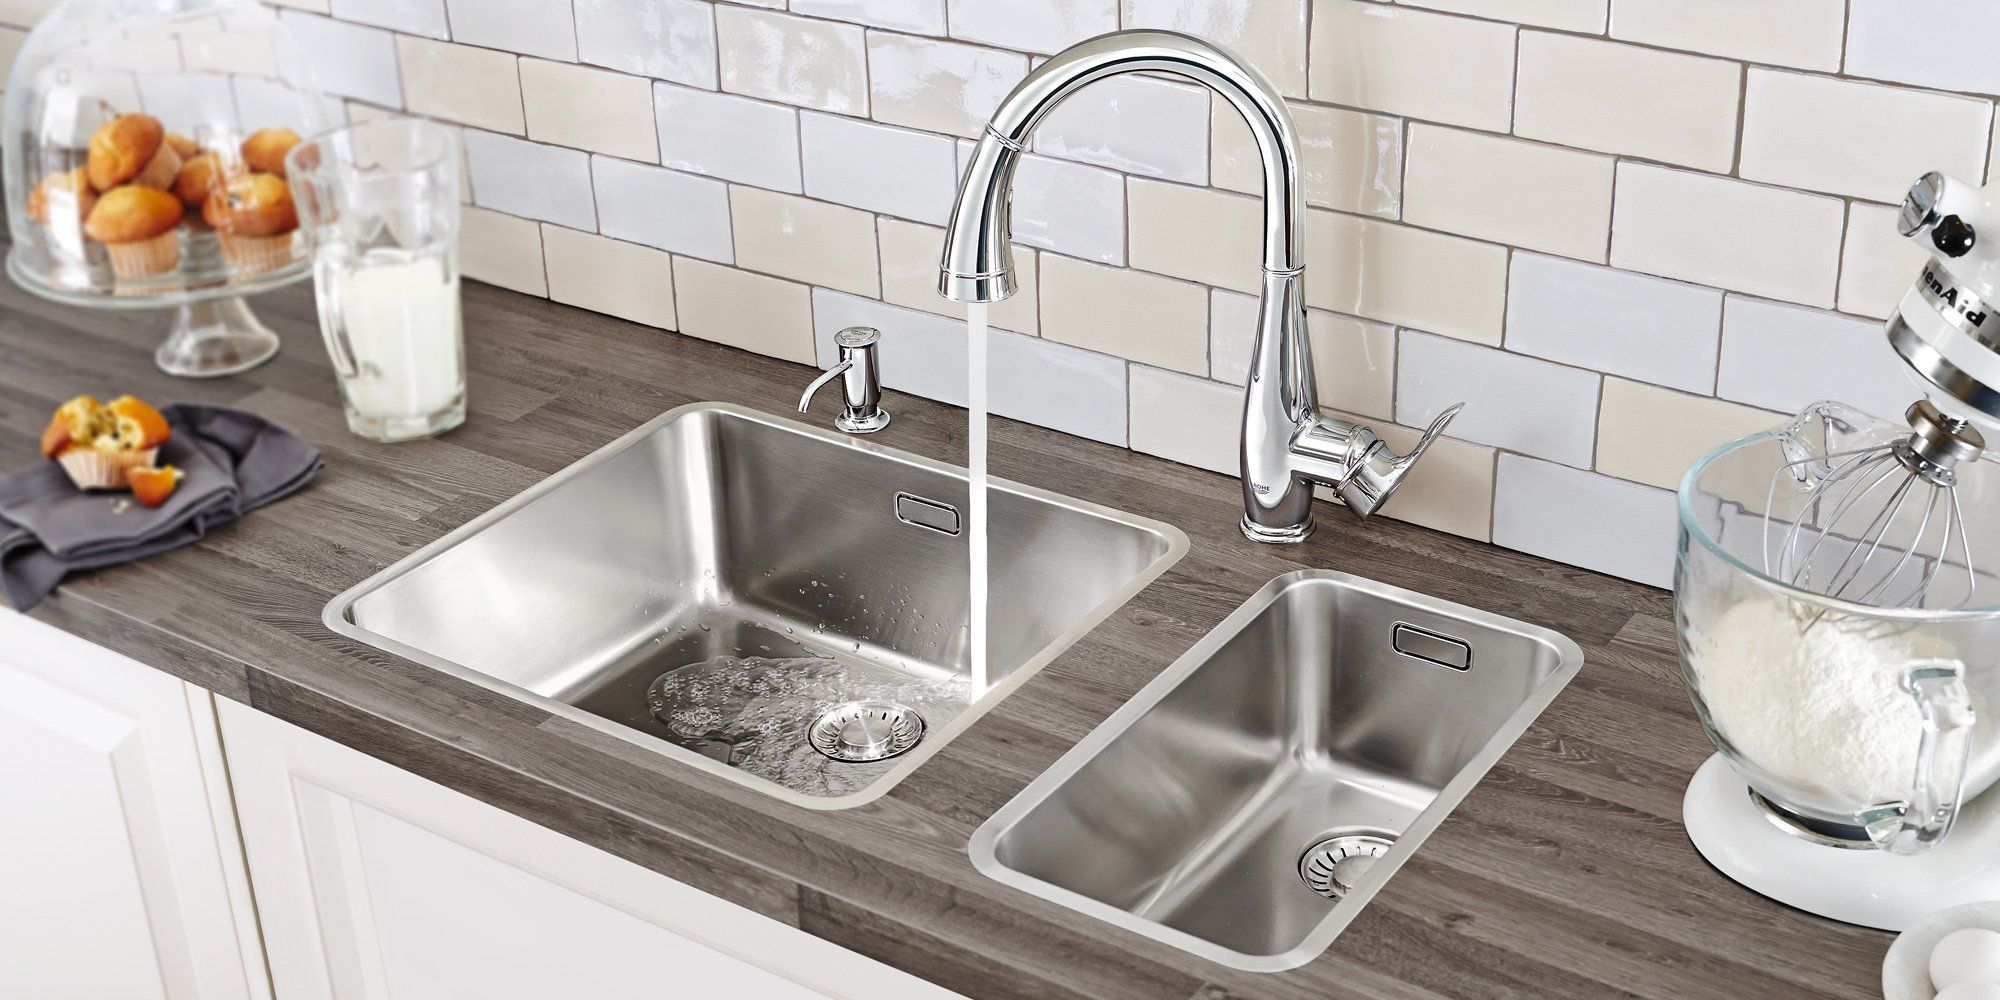 GROHE kitchen faucet at TAPS Kitchen and Bath Stores